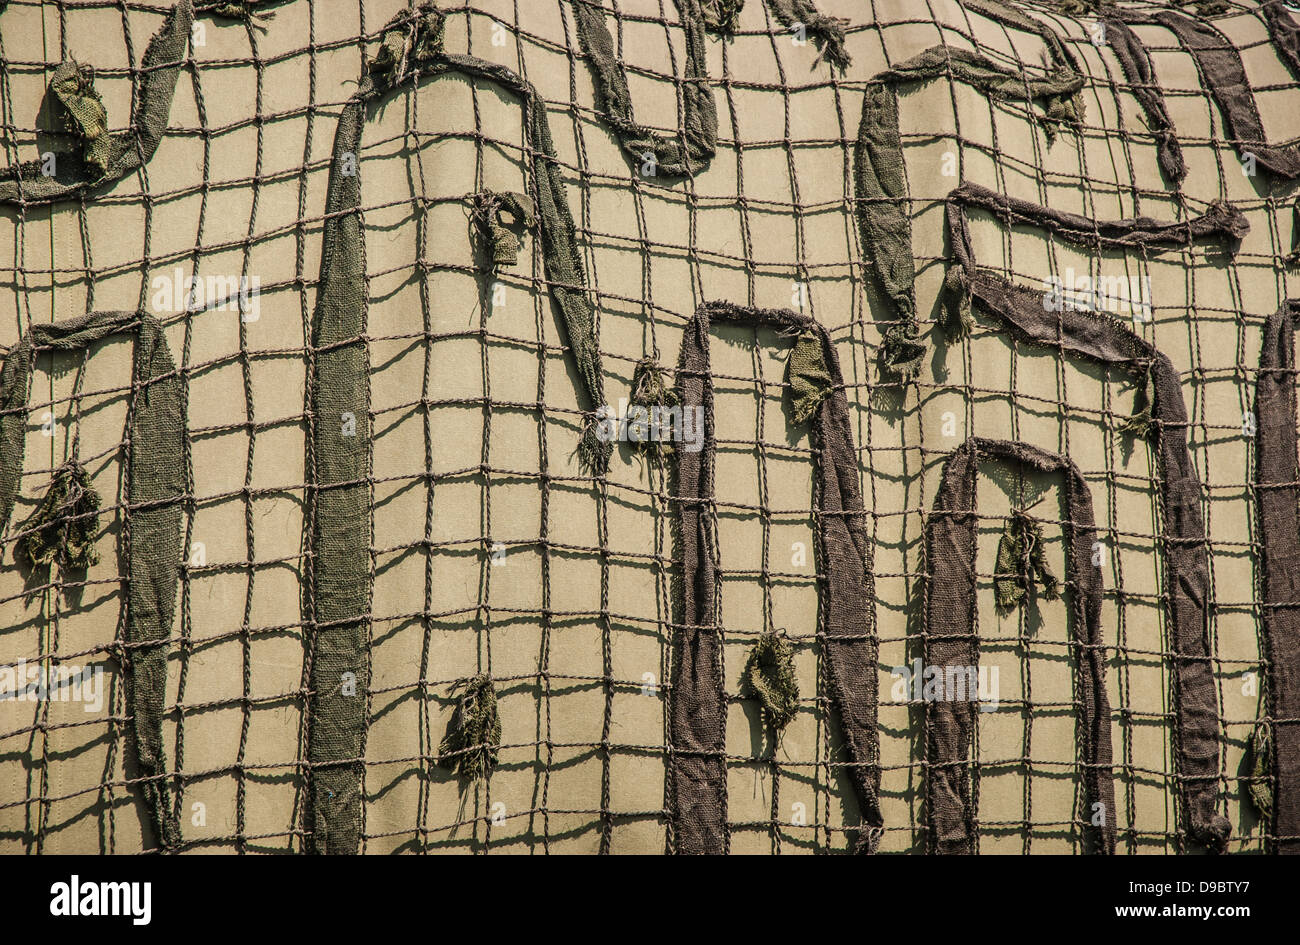 Close detail of military Camouflage netting. - Stock Image